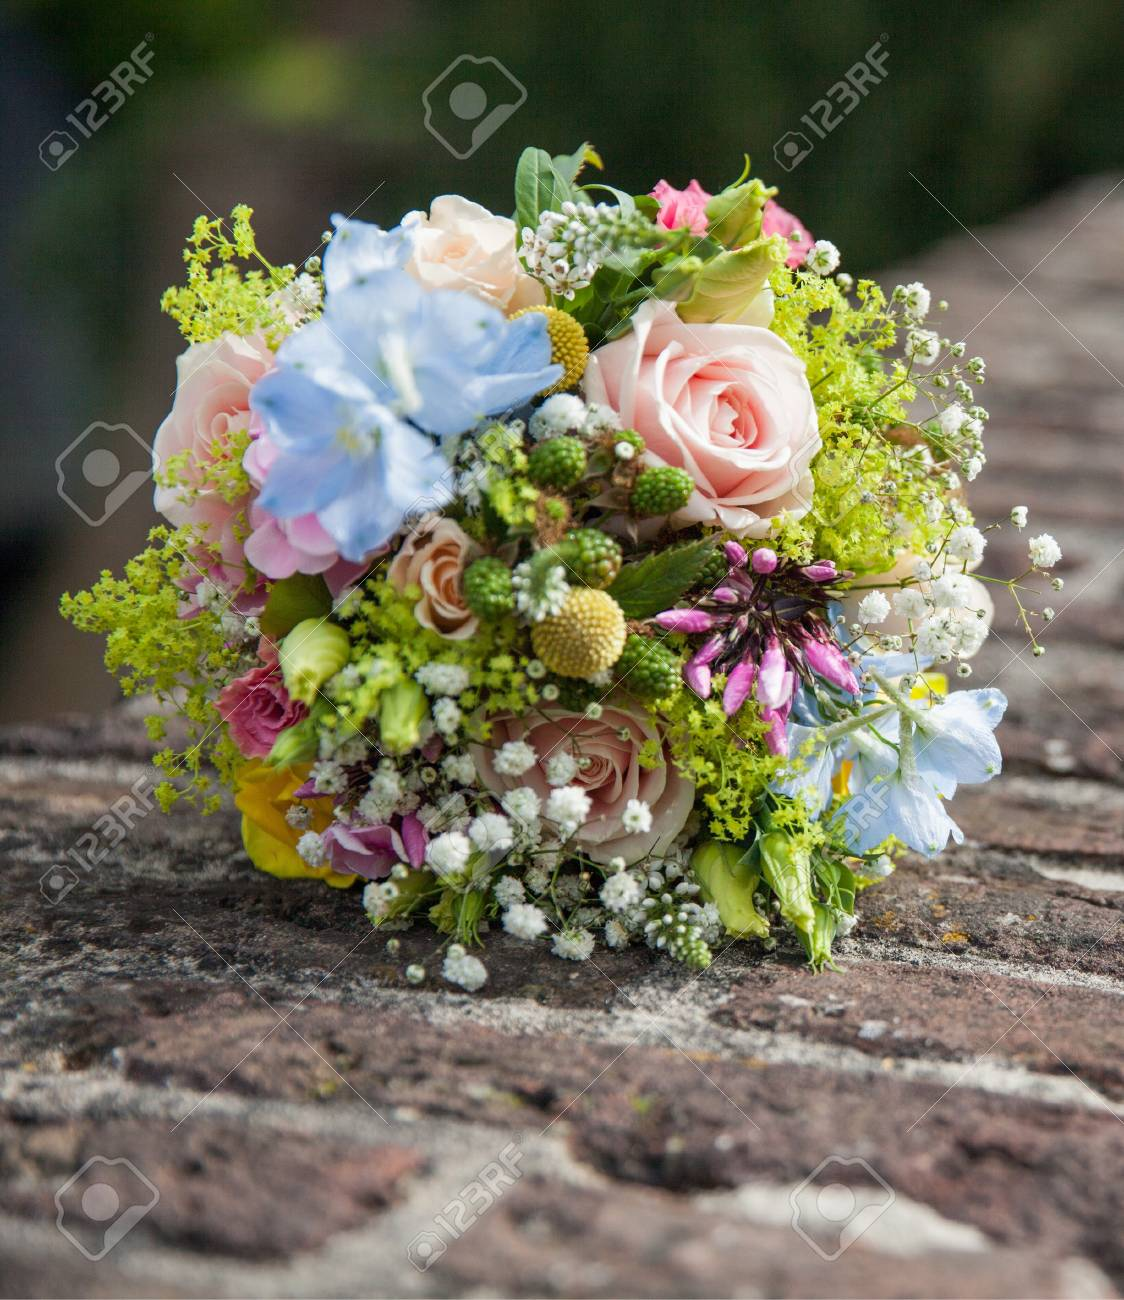 Background Of A Gorgeous Bouquet Of Flowers Stock Photo, Picture And ...